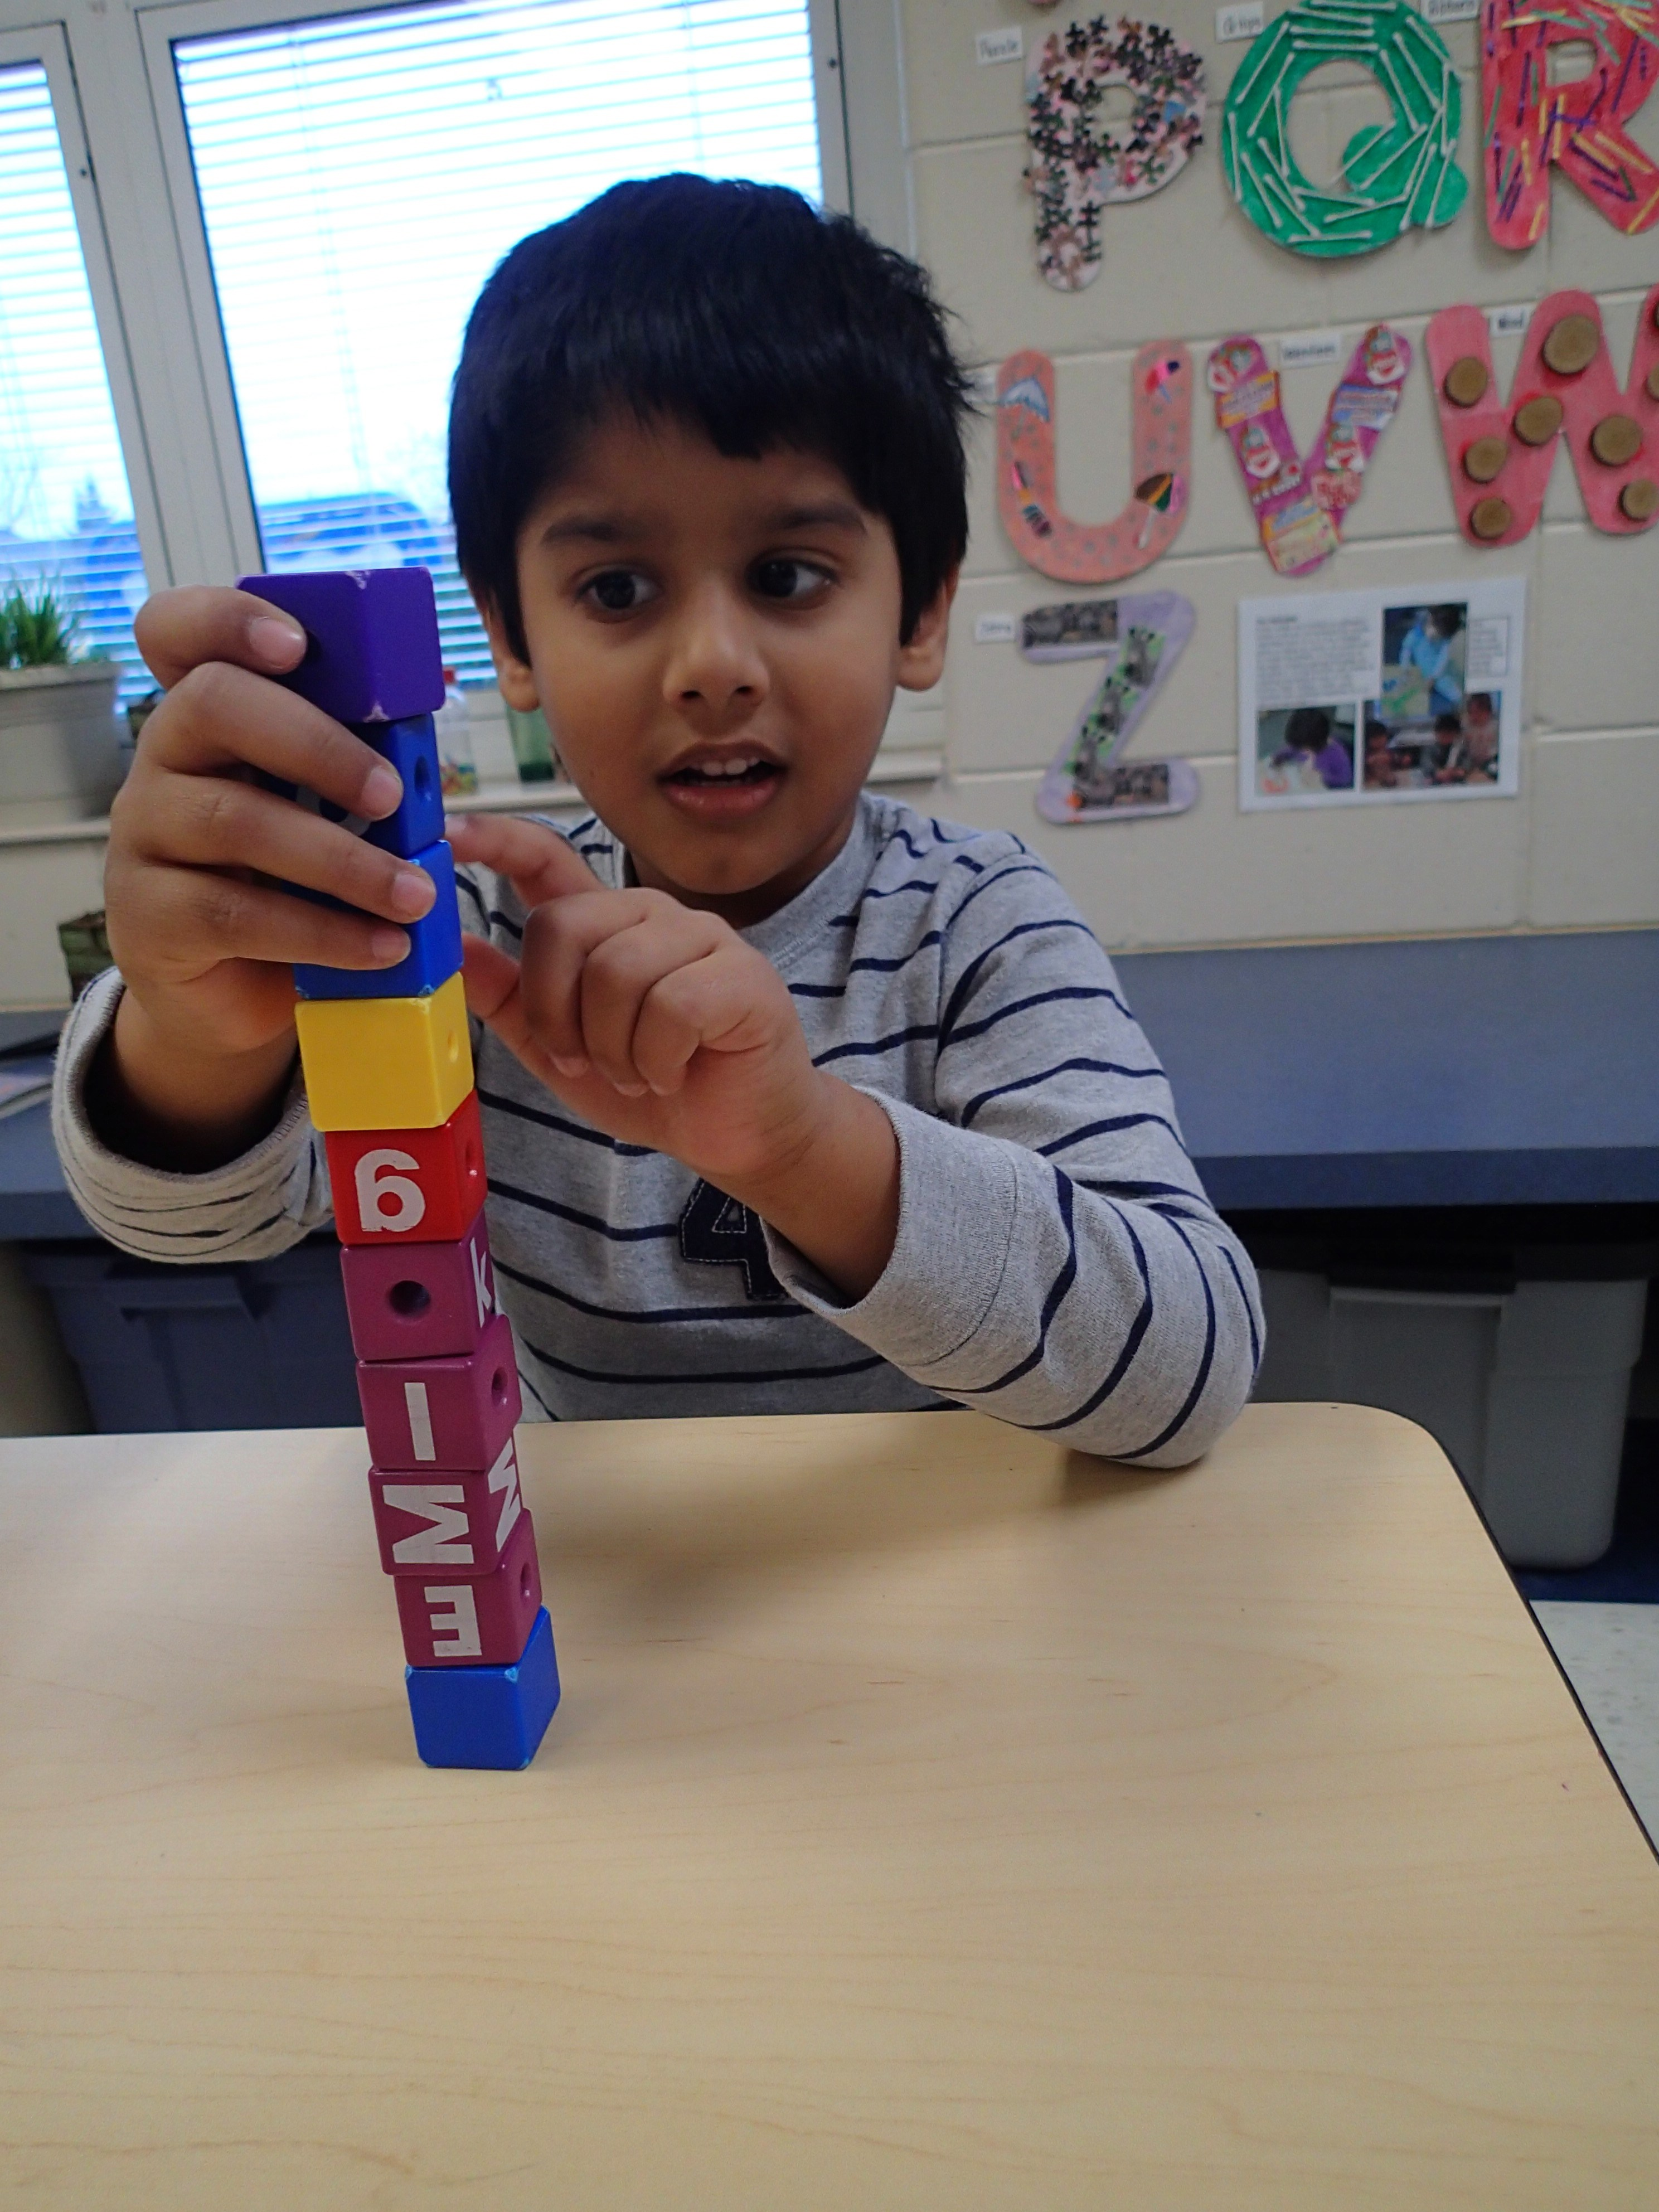 building a tower with blocks